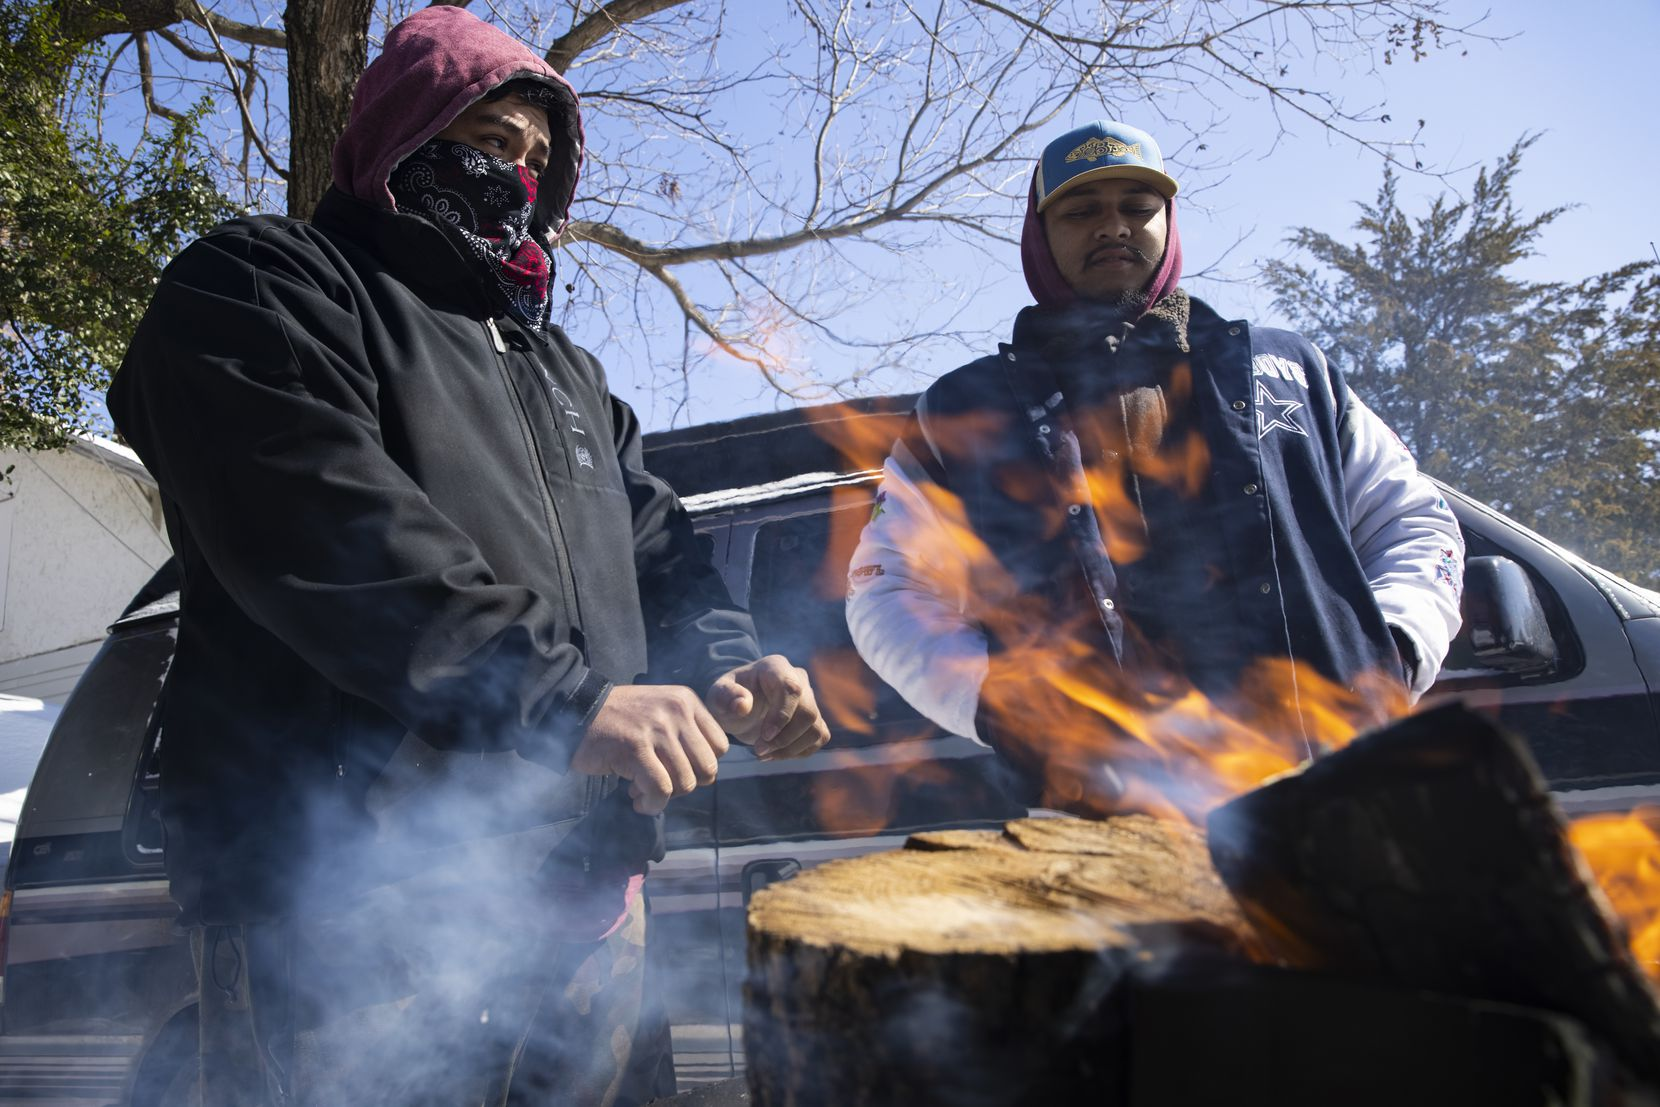 "(From left) brothers Alfredo Colon and Eduardo Colon chat over a fire in front of their East Dallas home on Monday, Feb. 15, 2021. The family lost their power during the night at around 2am. ""It feels better out here than it does in there,"" Alfredo said. (Juan Figueroa/ The Dallas Morning News)"